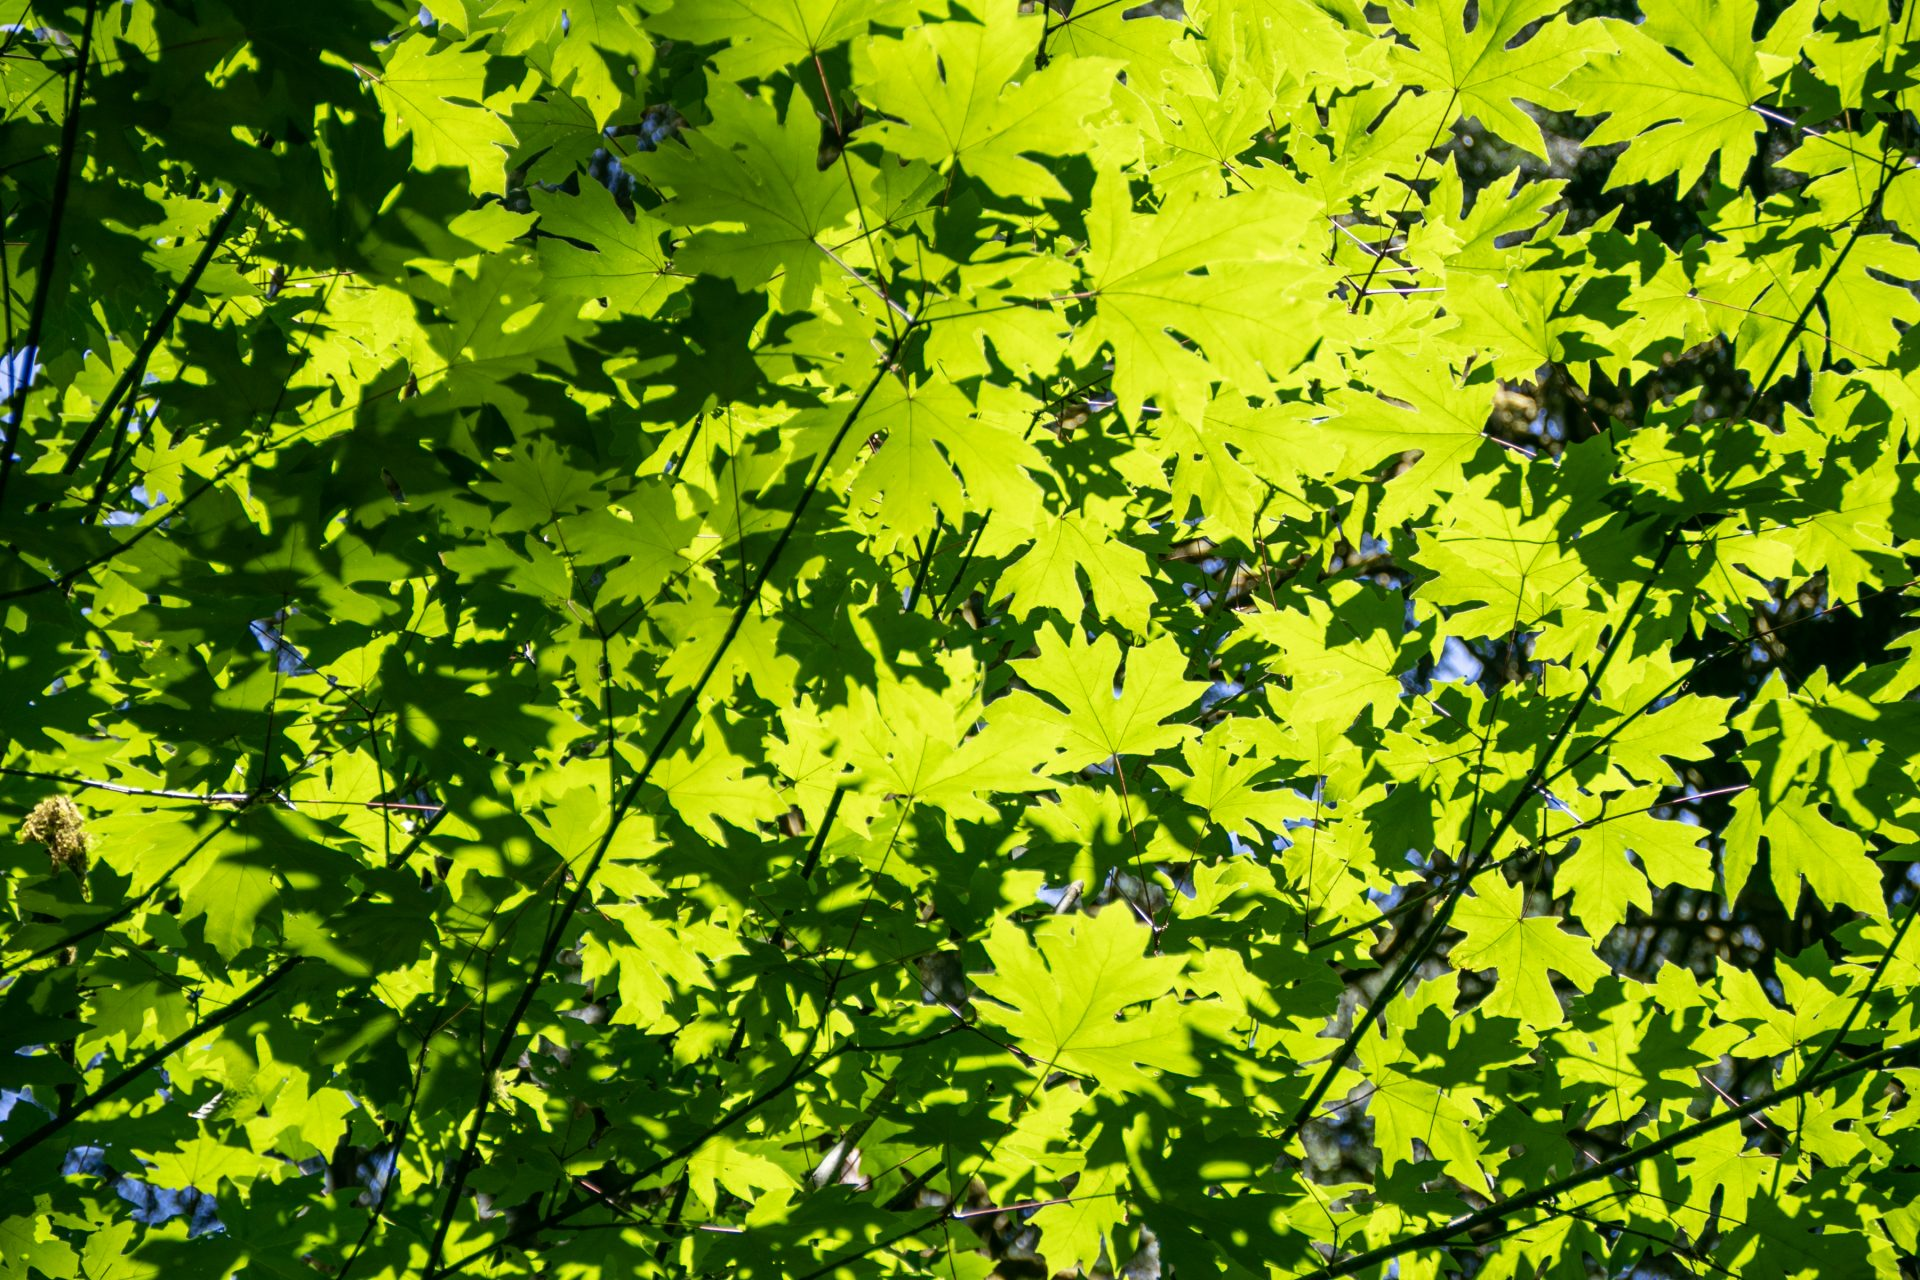 Sunlit Green Tree Leaves